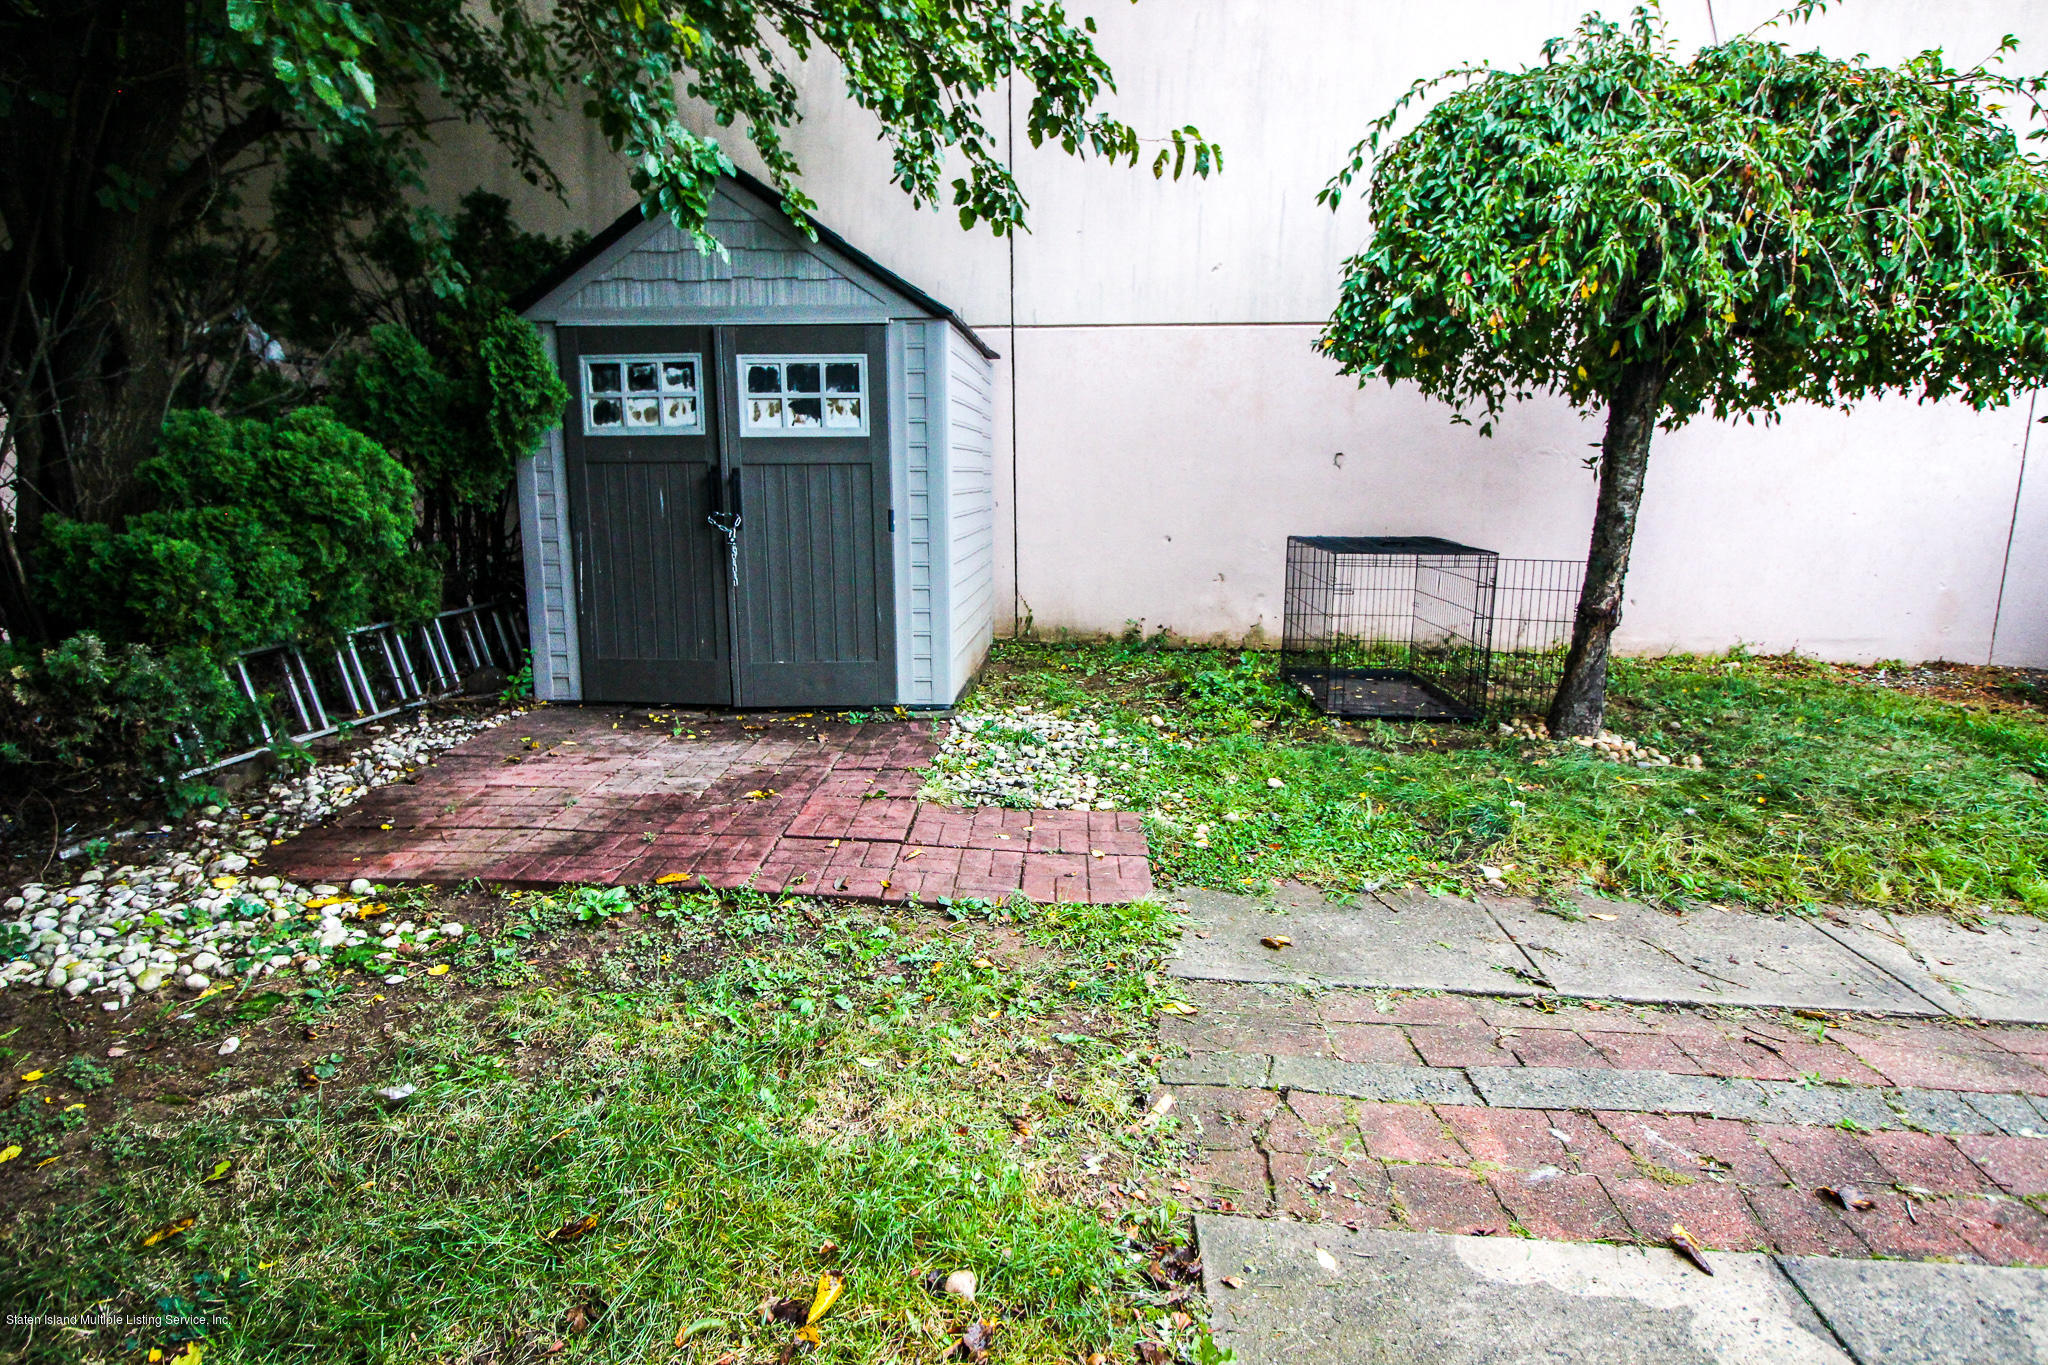 Single Family - Attached 86 Country Drive S Drive  Staten Island, NY 10314, MLS-1141008-43